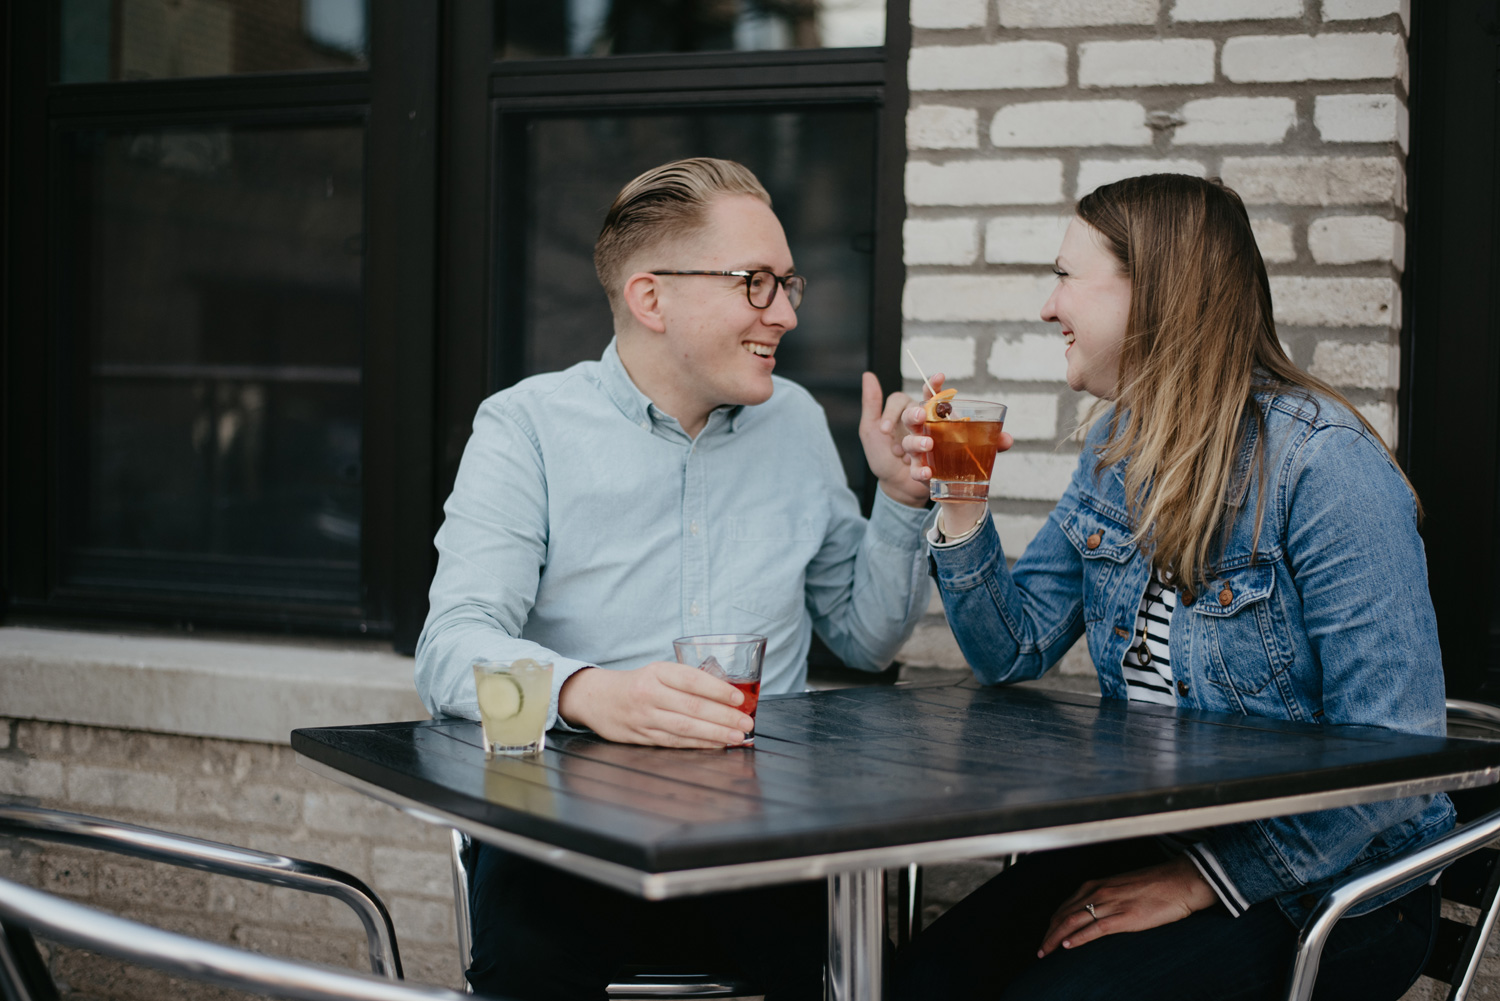 engaged couple having a drink and laughing at each other